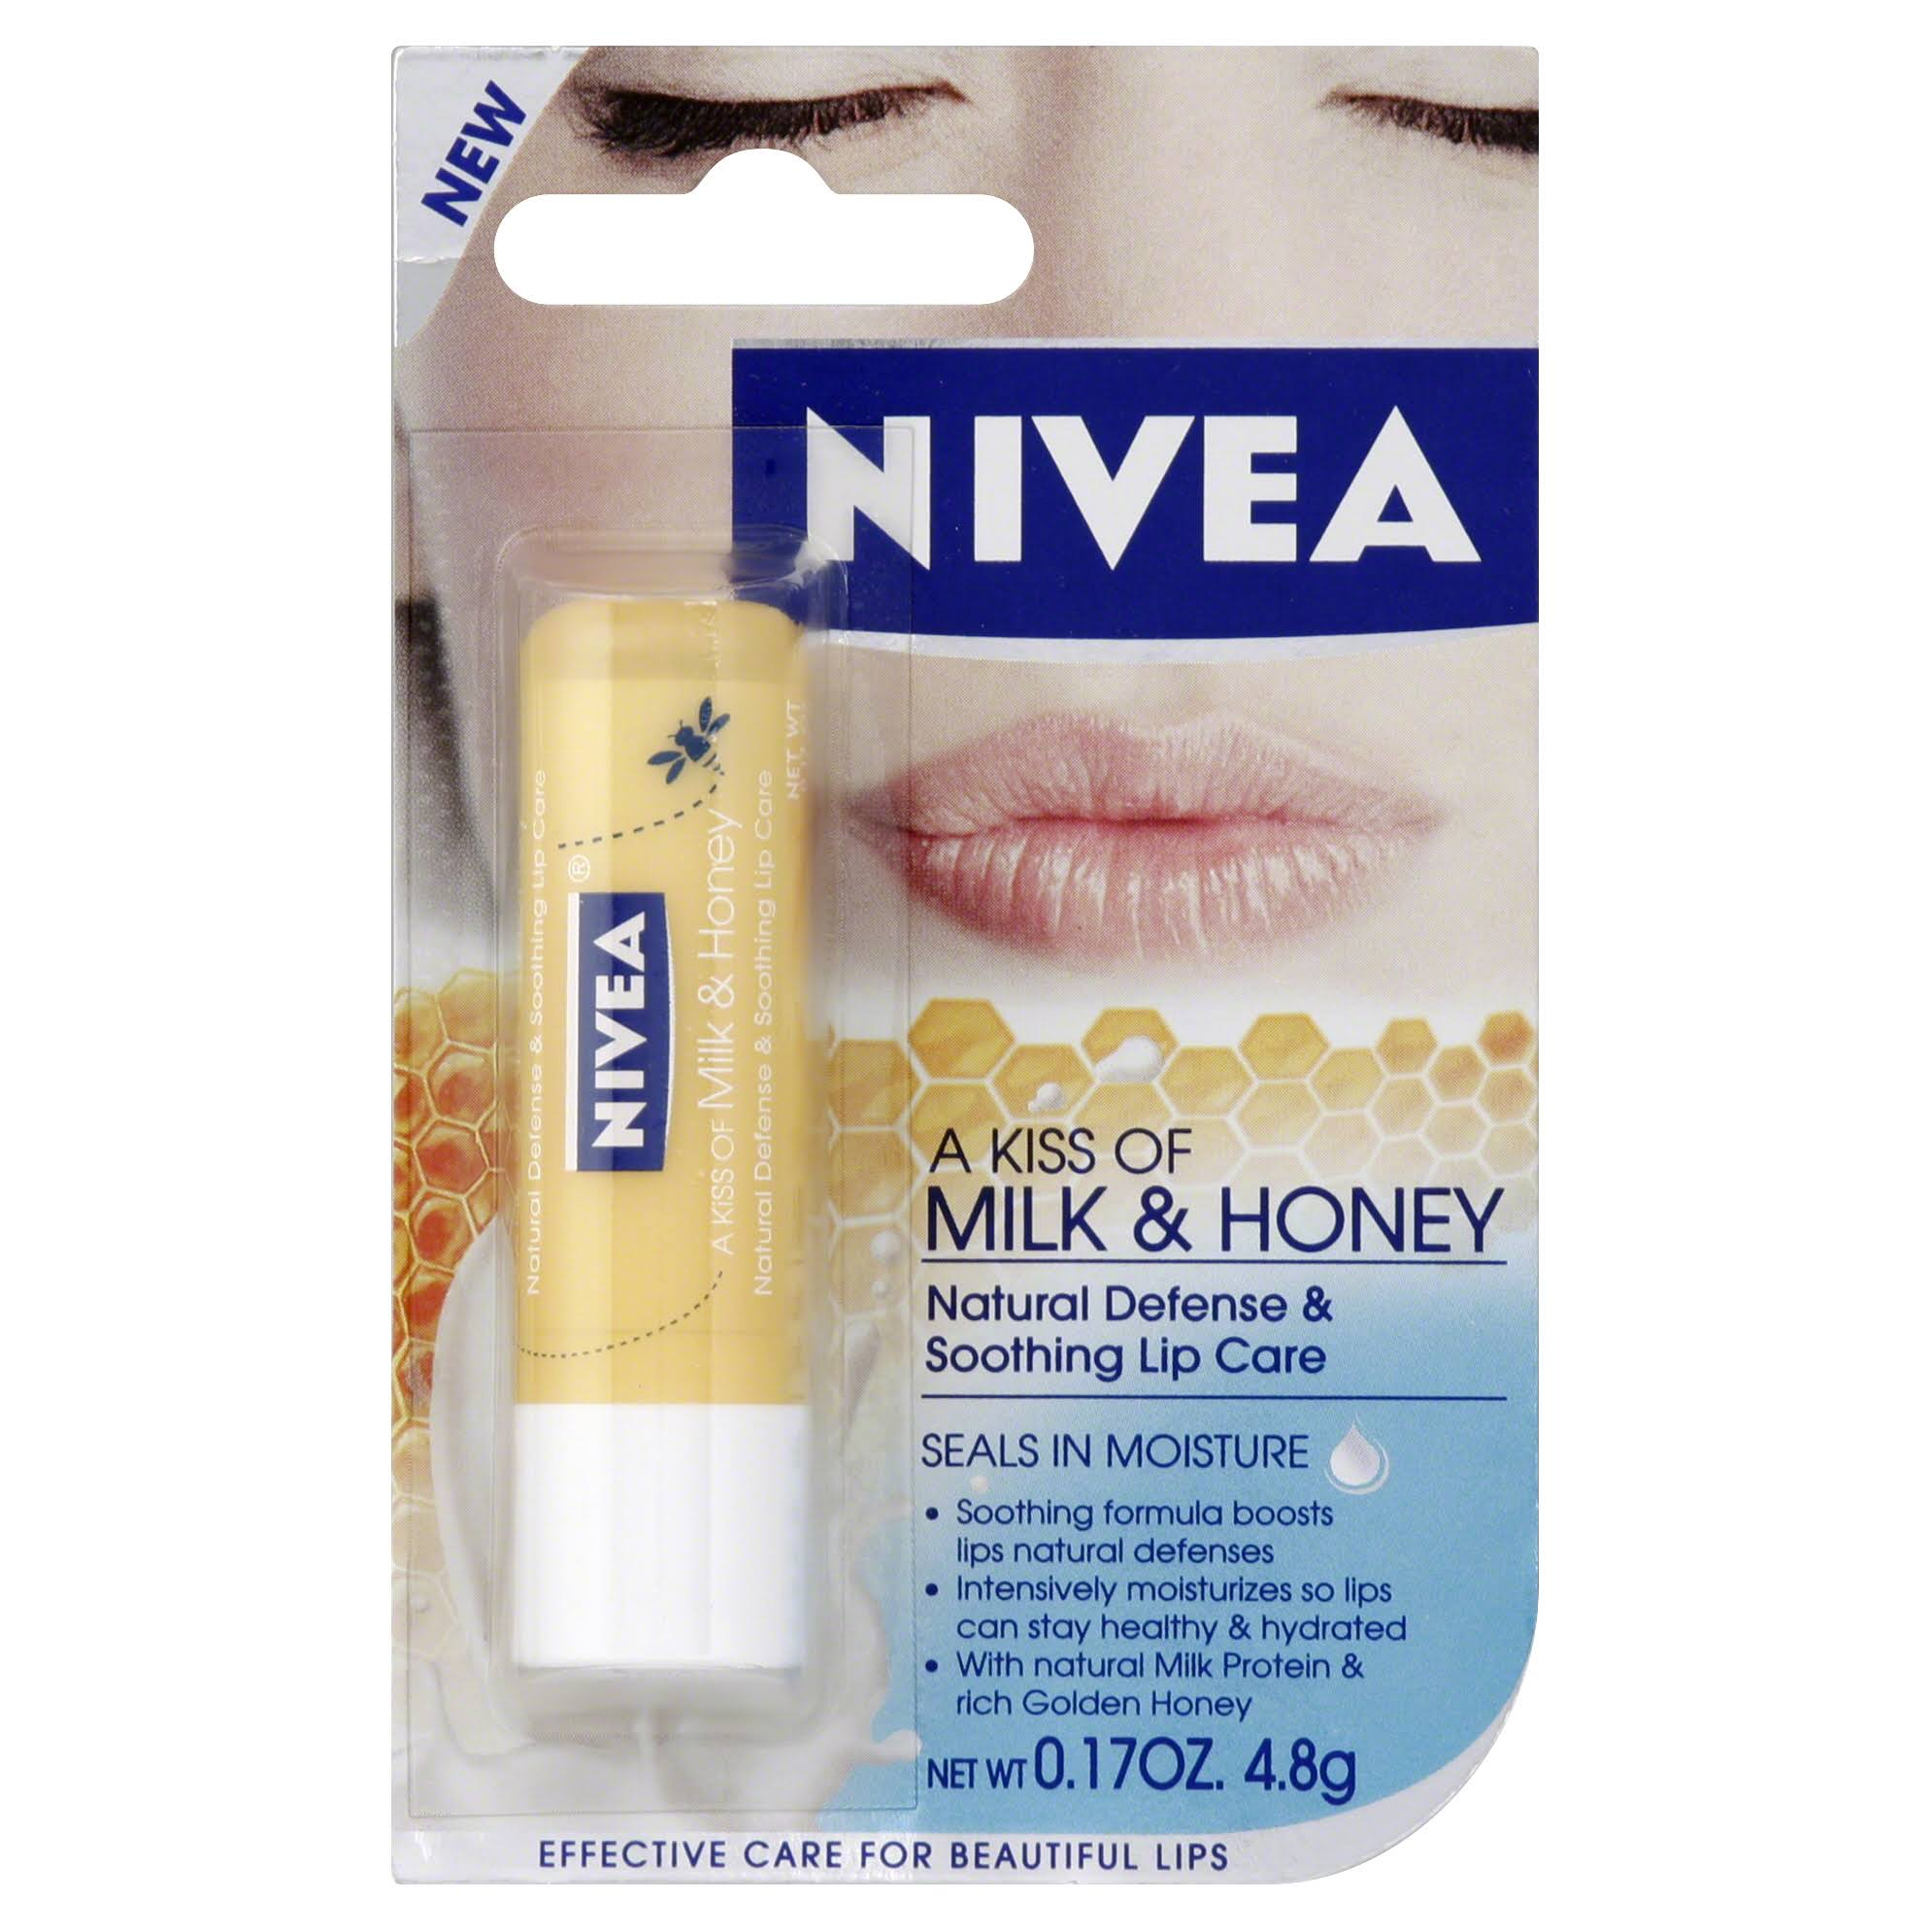 Nivea A Kiss of Soothing Lip Care - Milk & Honey, 4.8g